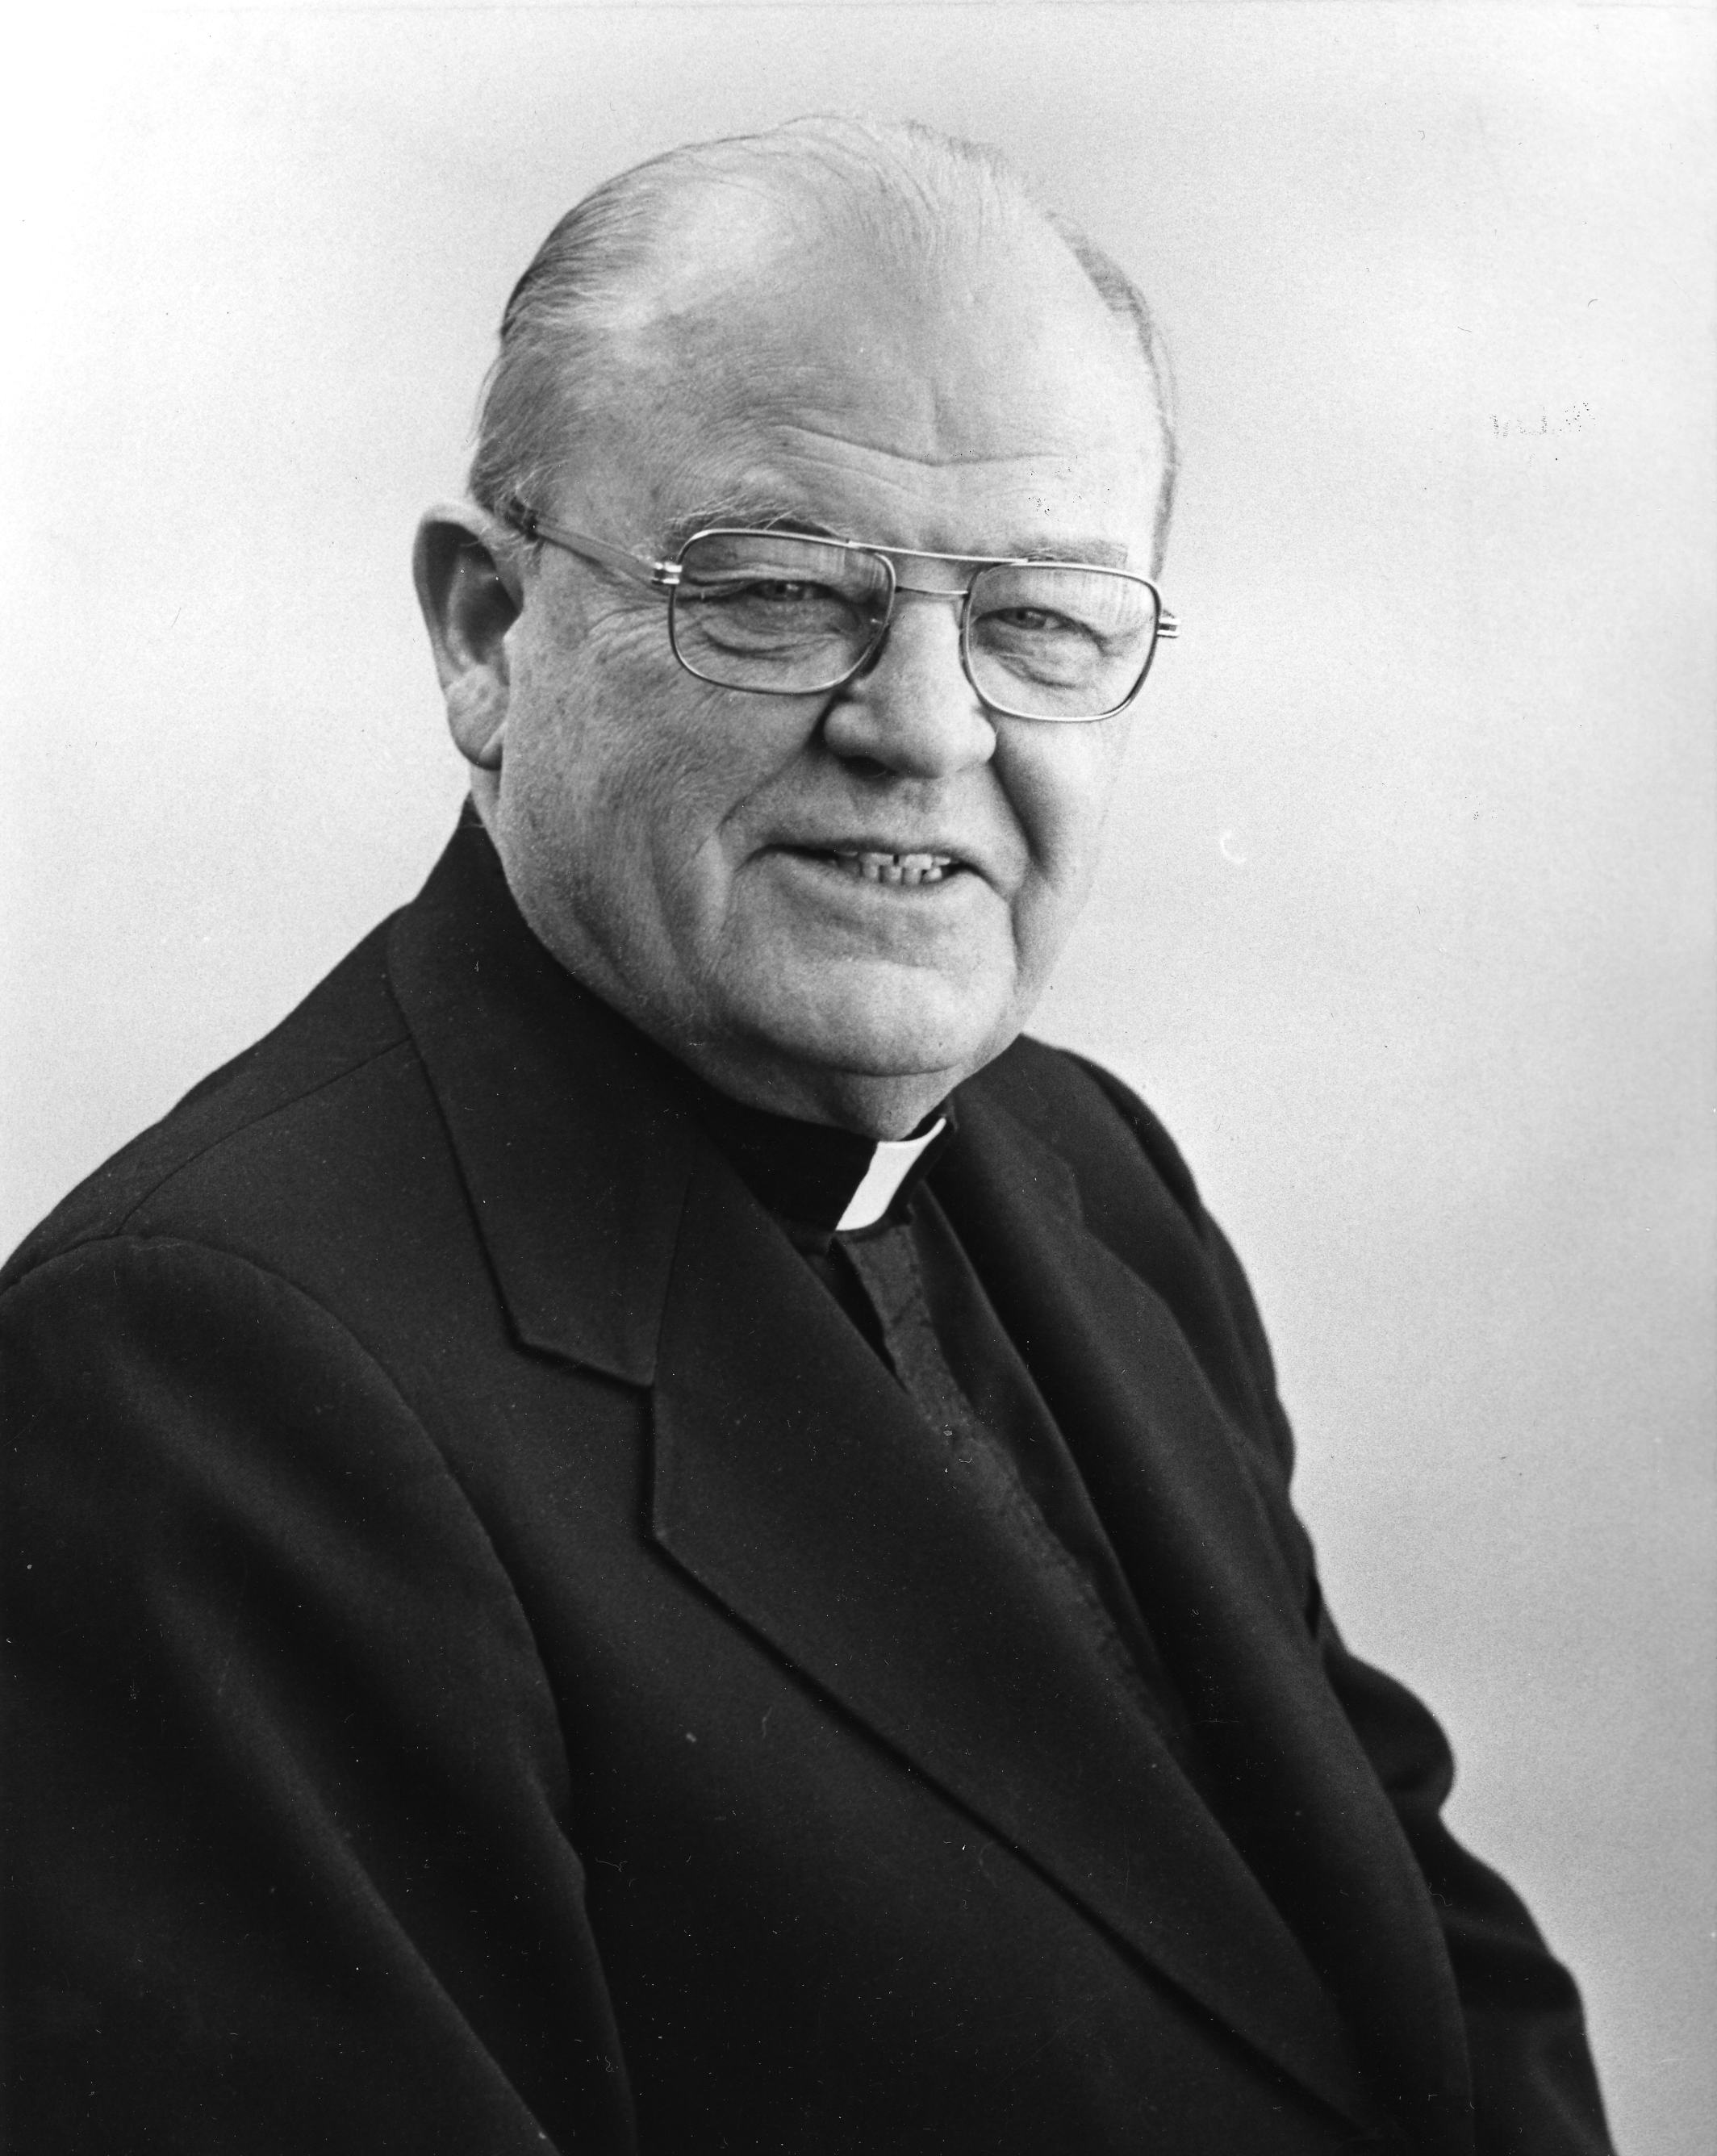 Reverend Edward J. McCarthy, O.S.A., Ph.